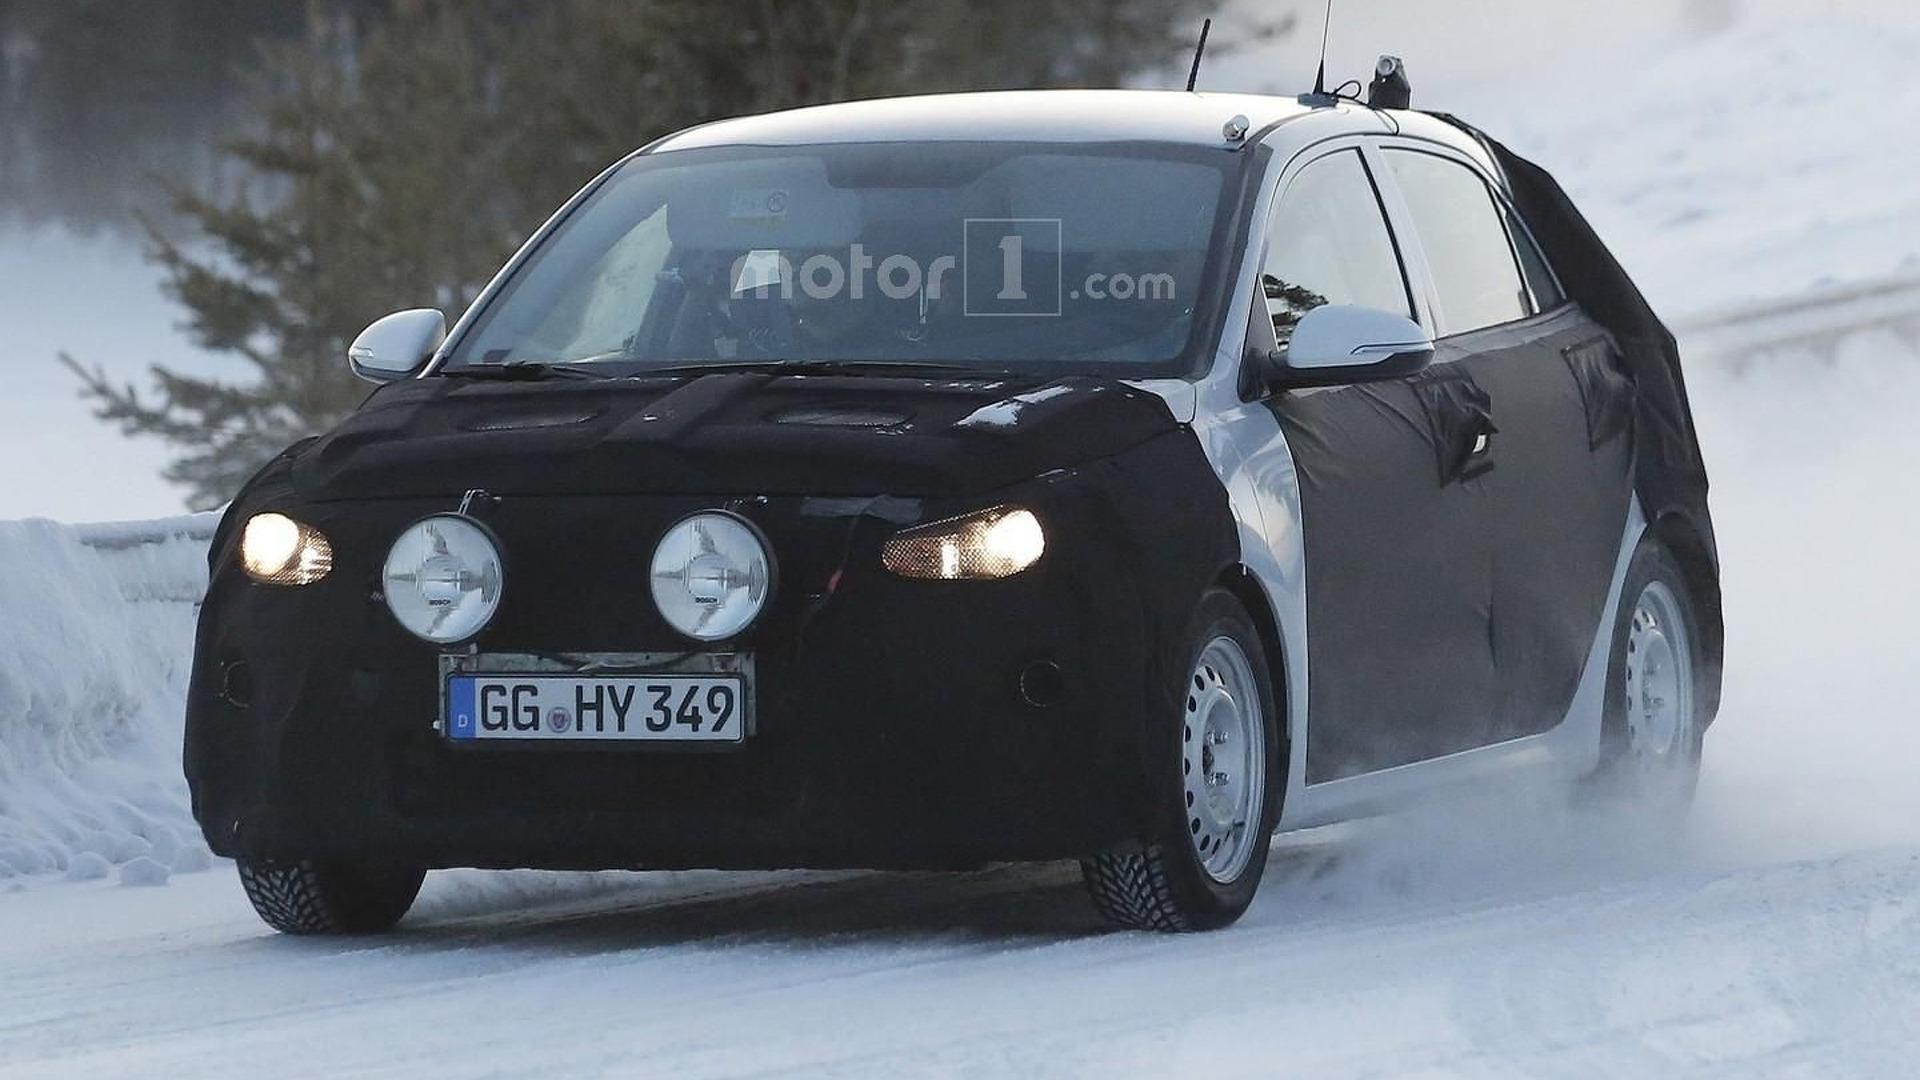 Kia Rio GT due 2018 with 180-hp 1.6-liter engine?